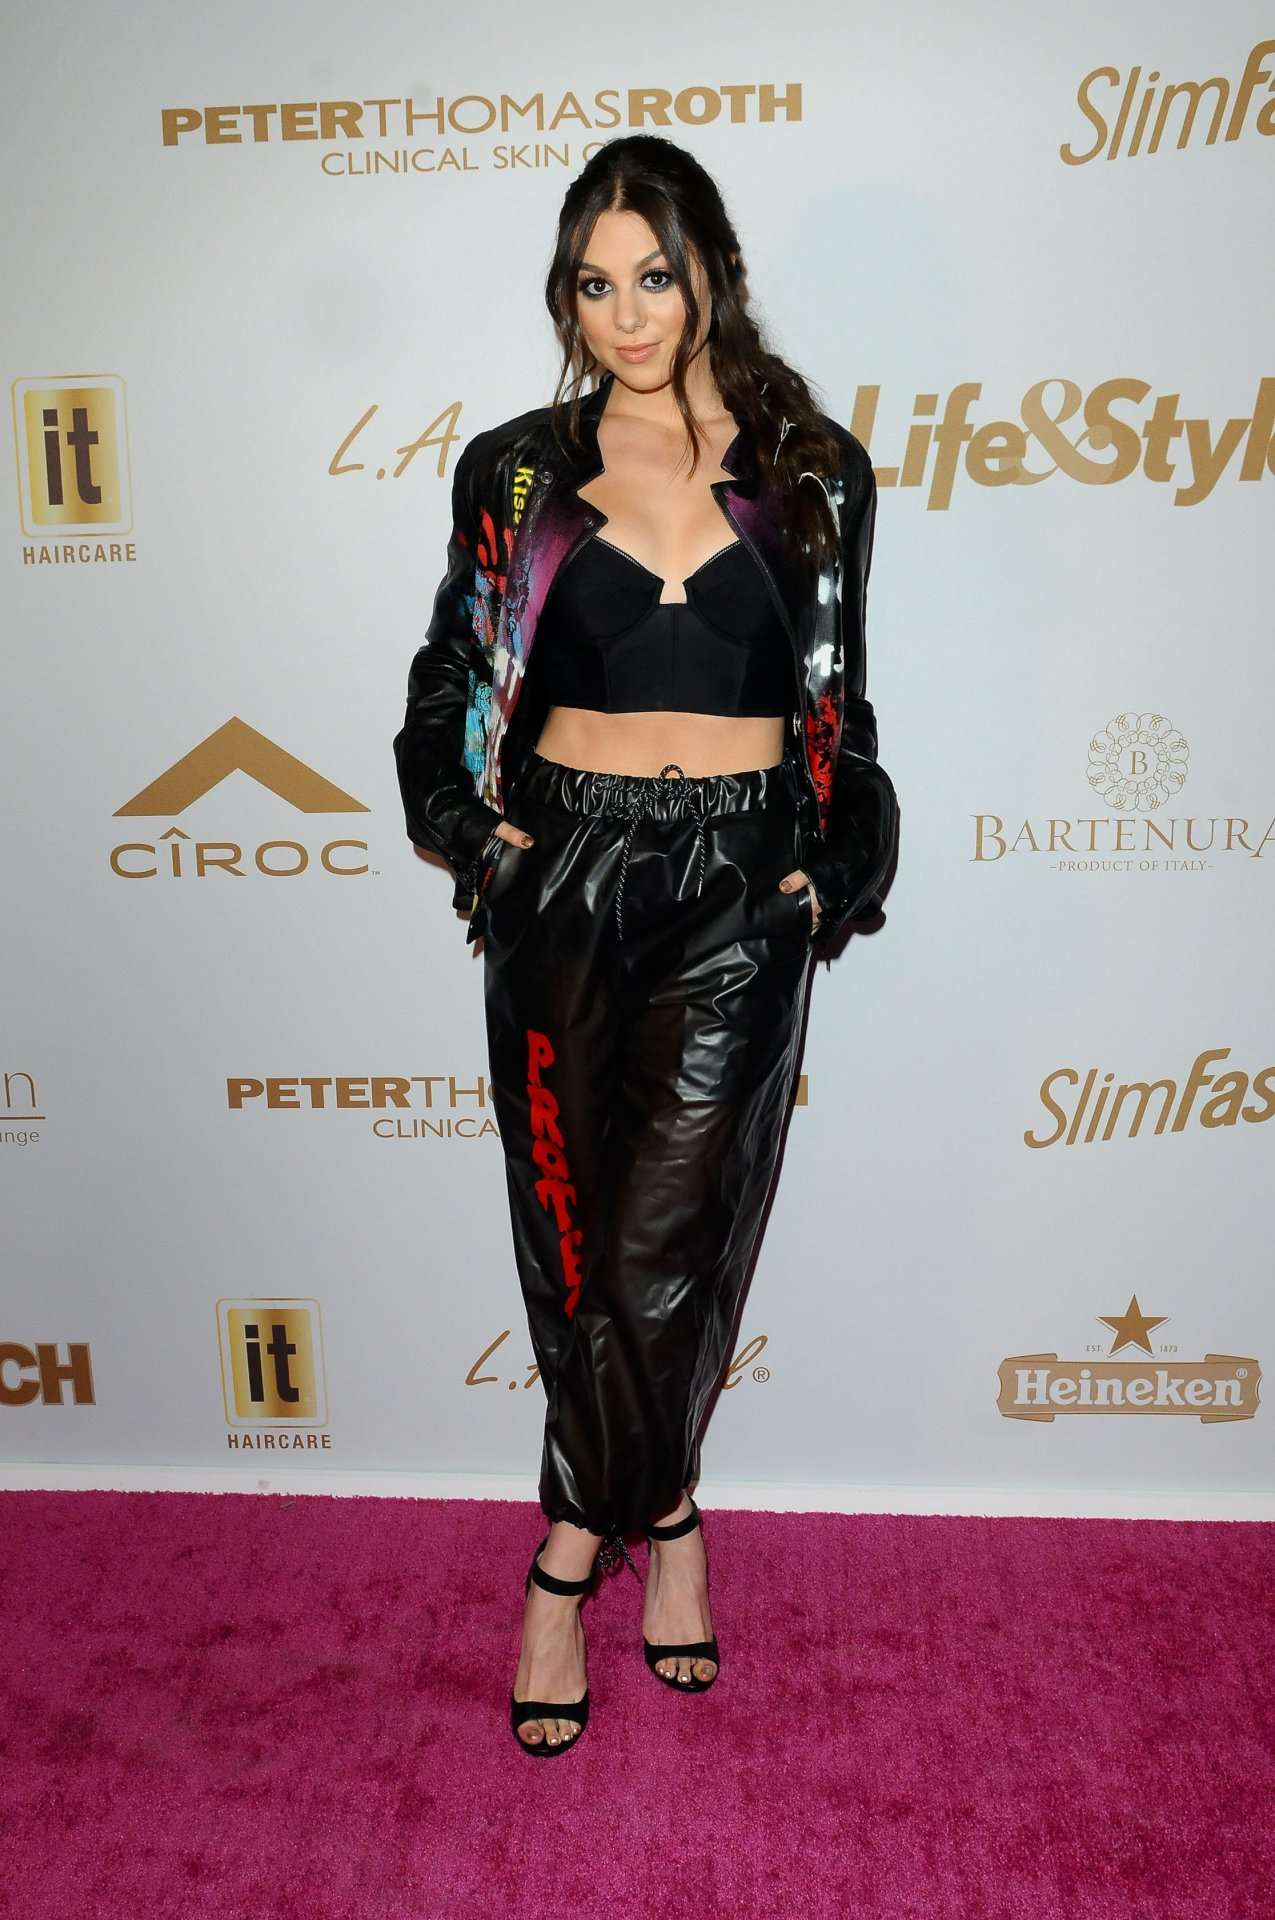 Kira Kosarin – OK! Star InTouch Life&Style Pre-Grammys Party in Los Angeles